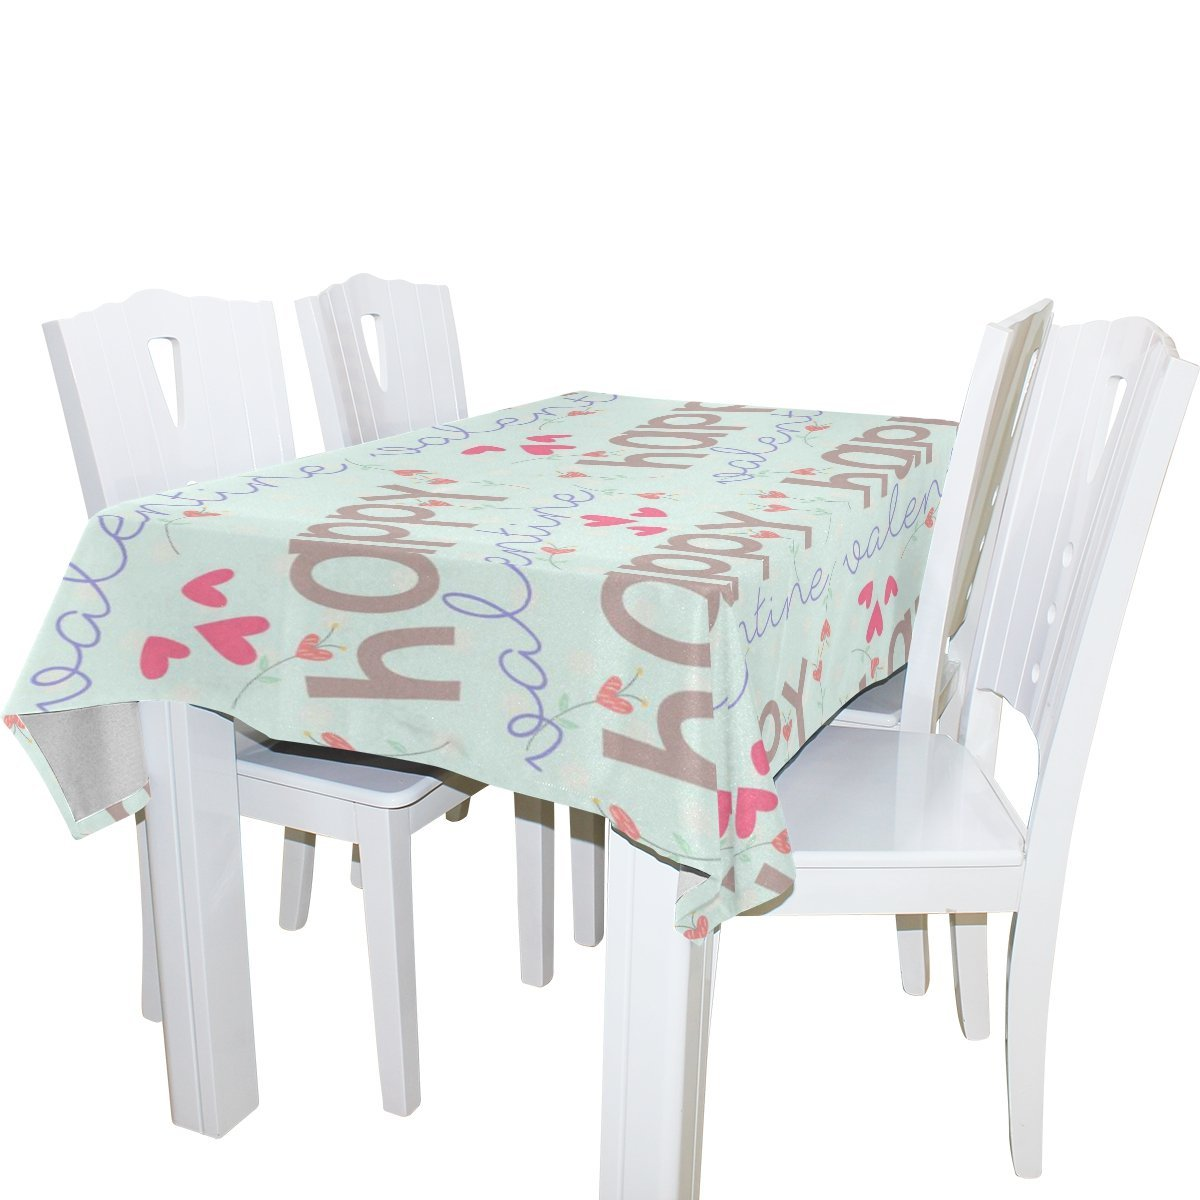 POPCreation Happy Valentine Tablecloths Love Heart Table Top Decoration  52x70 Inches